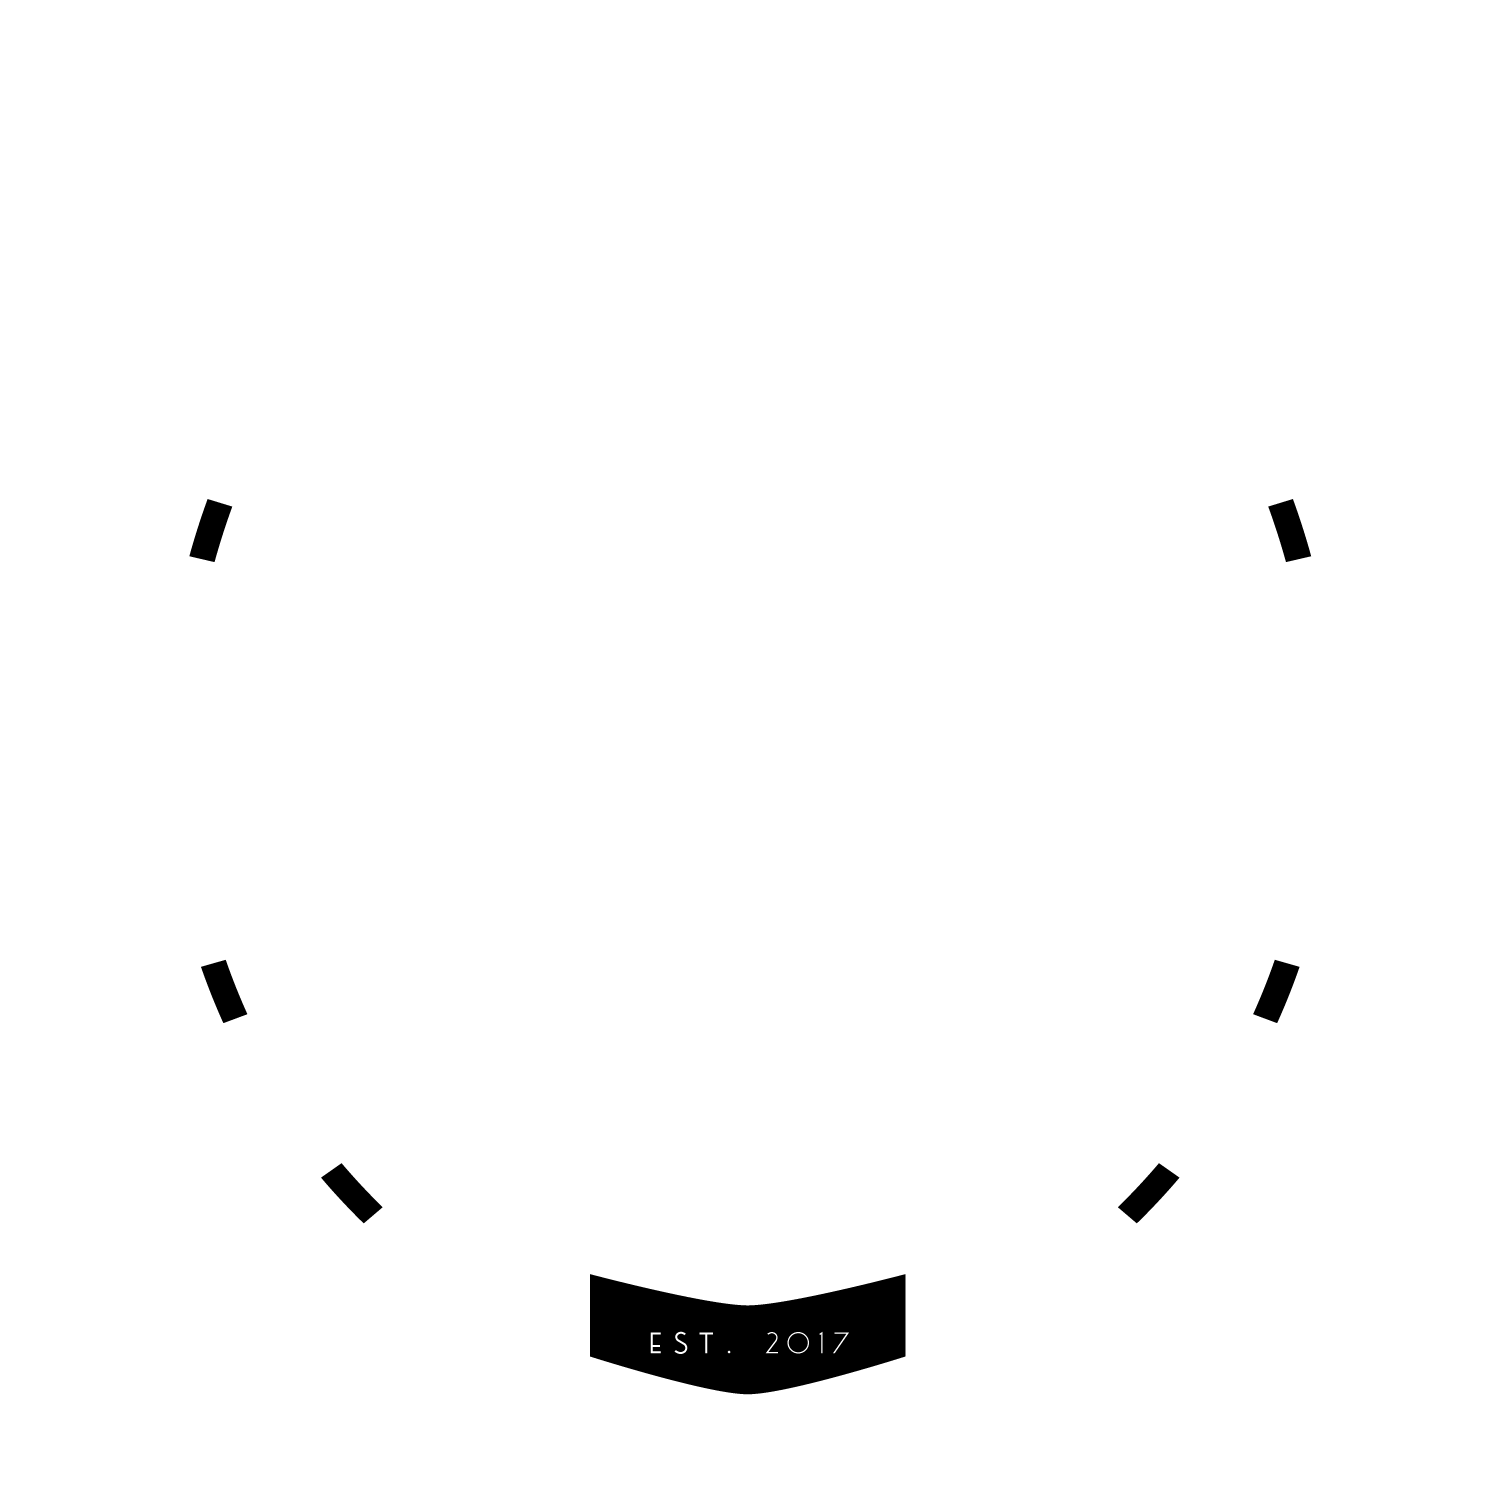 Paragon Farms